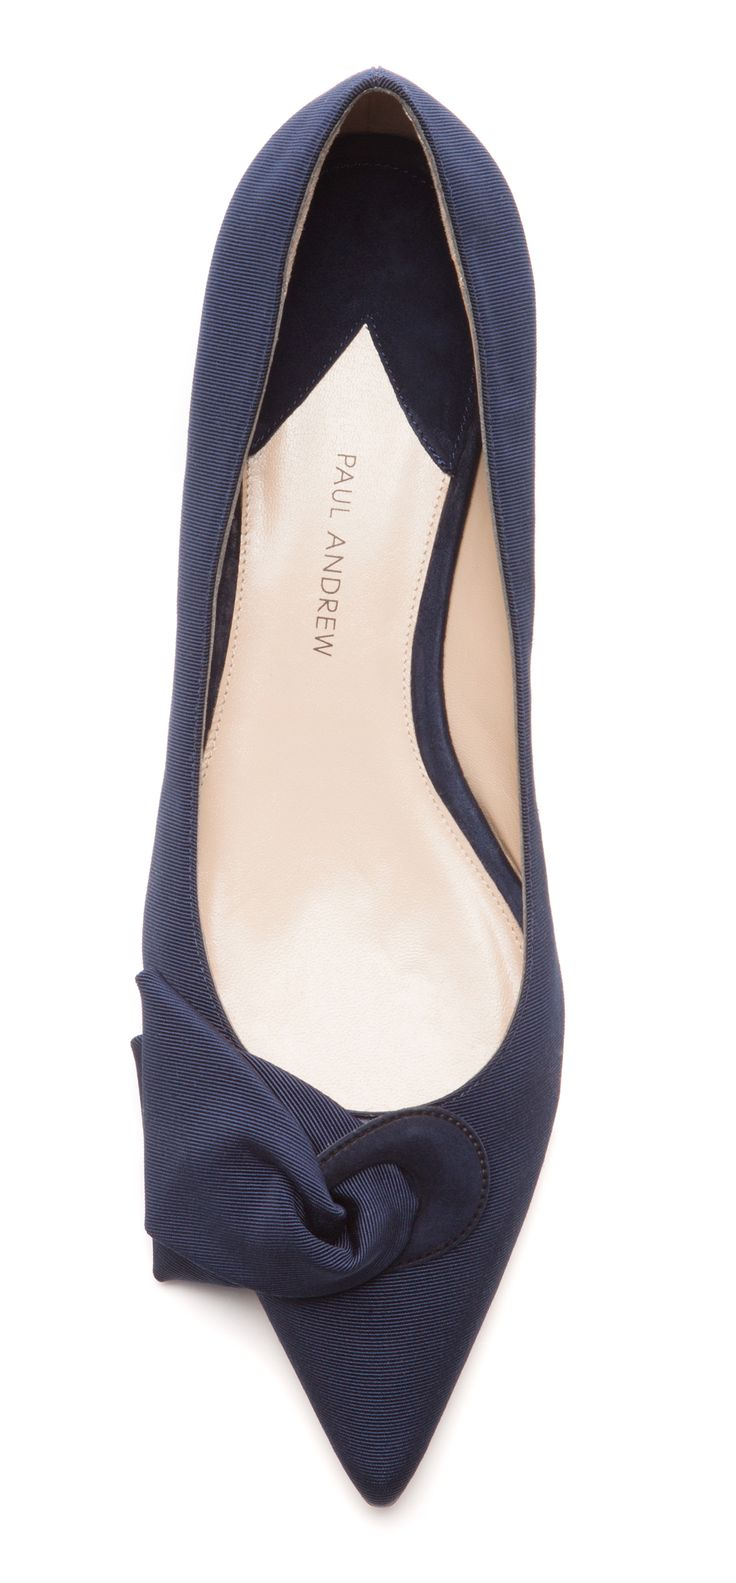 Classic pointed flats that would go well with business attire or casual clothing